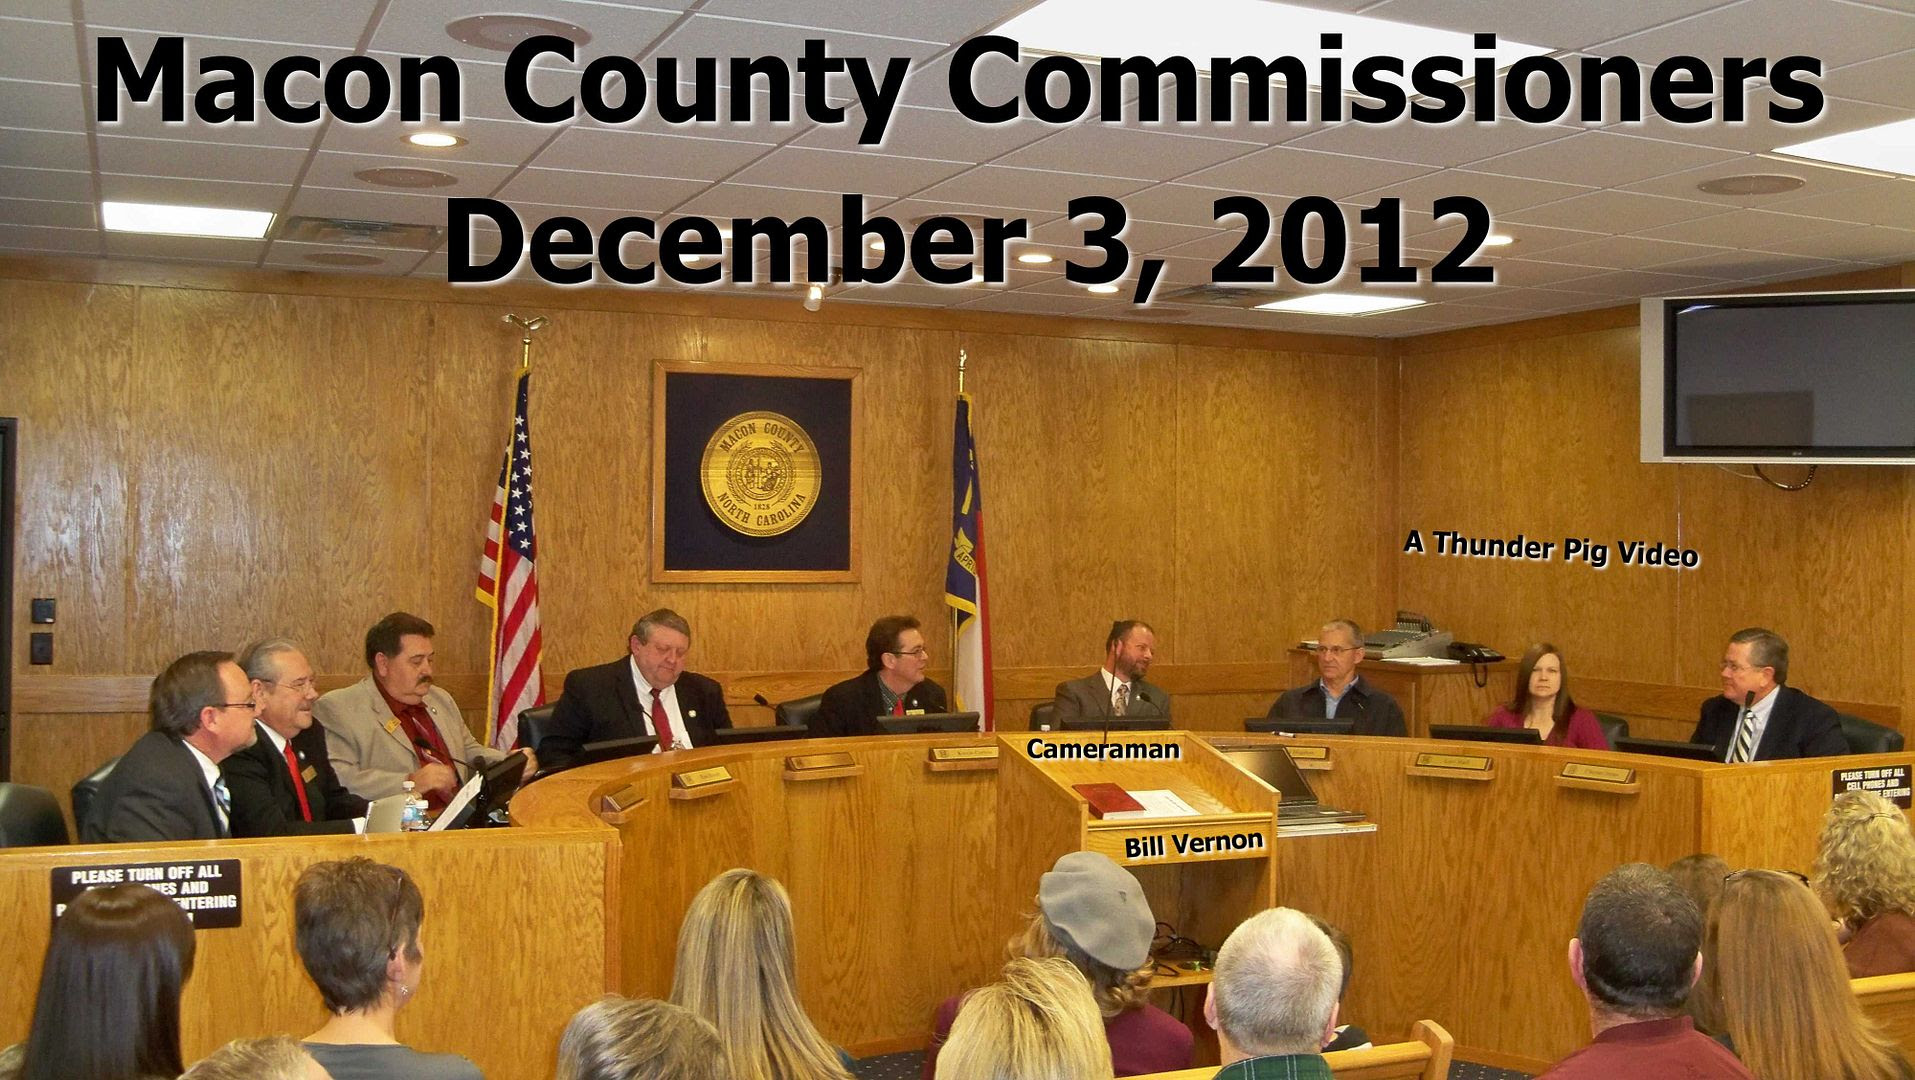 The Macon County Commissioners